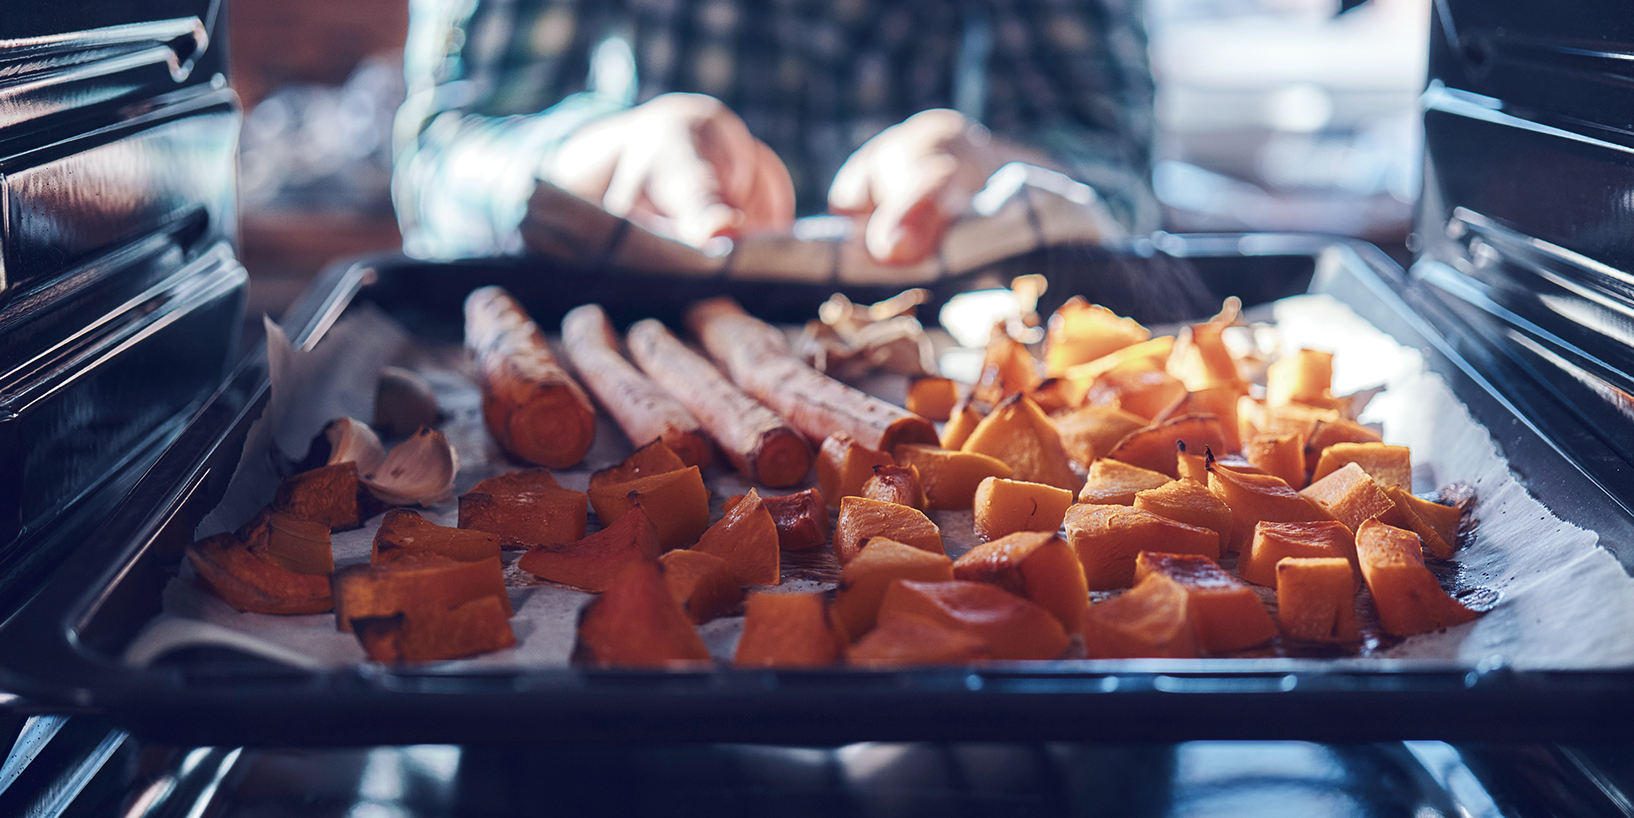 Someone pulling sweet potatoes out of the oven. Holiday meal